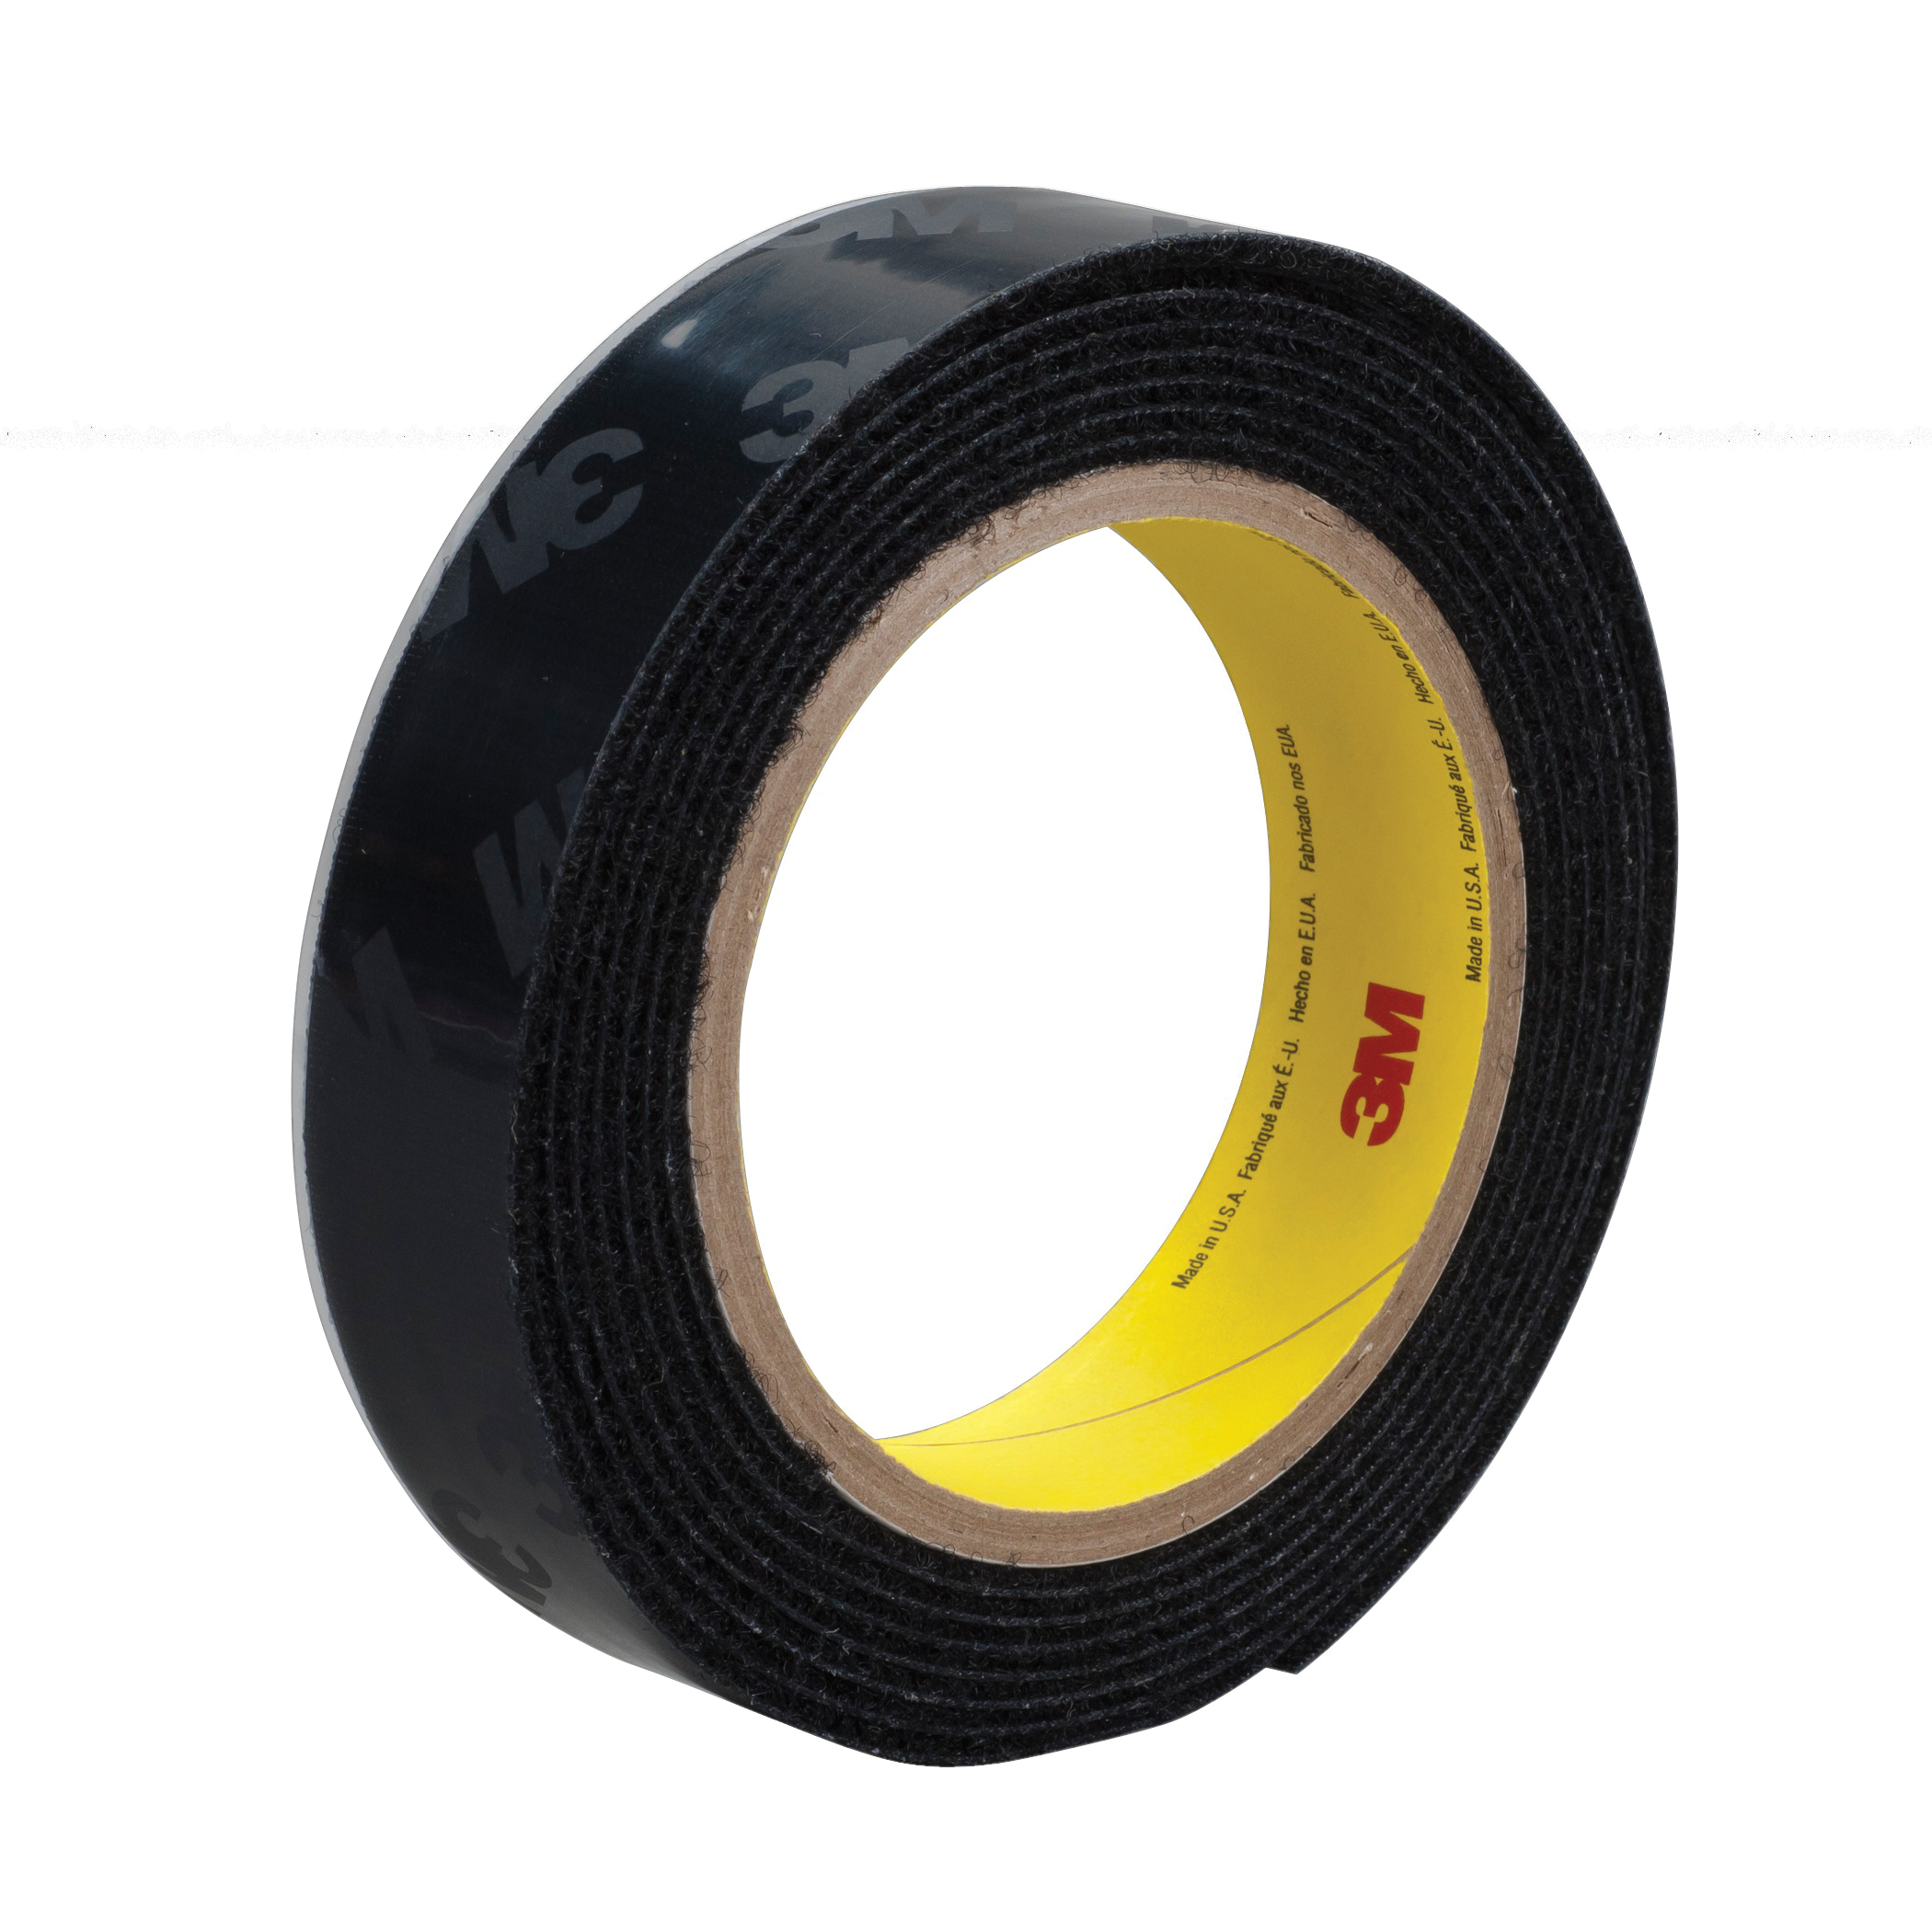 3M™ 021200-65617 General Performance Reclosable Loop Fastener Tape, 50 yd L x 3/4 in W, 0.15 in THK Engaged, High Tack Rubber Adhesive, Woven Nylon Backing, Black